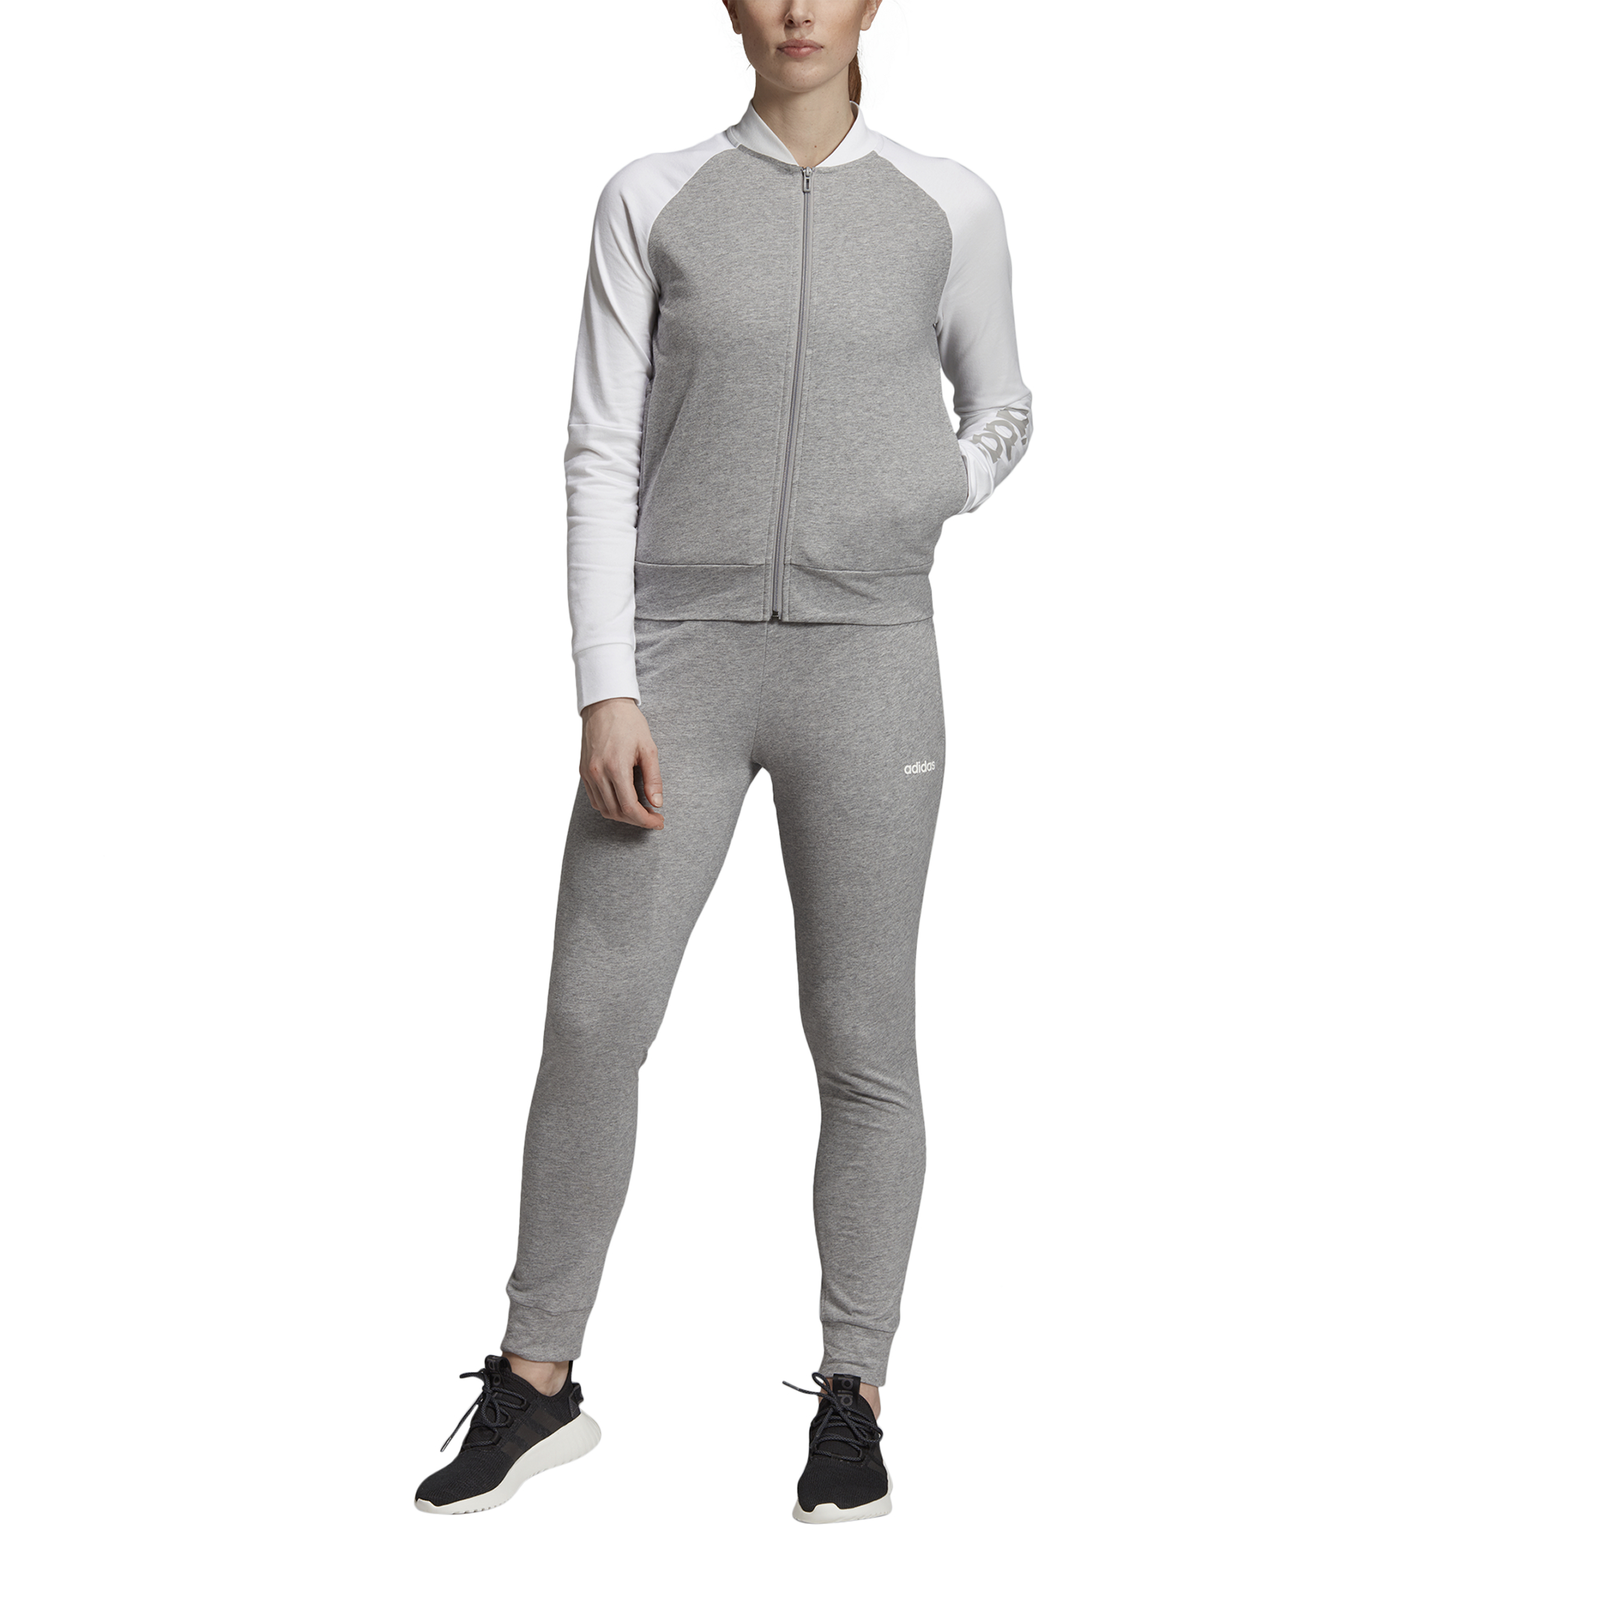 Details about Adidas Performance Women's Tracksuit New Cotton Marker Tracksuit Grey